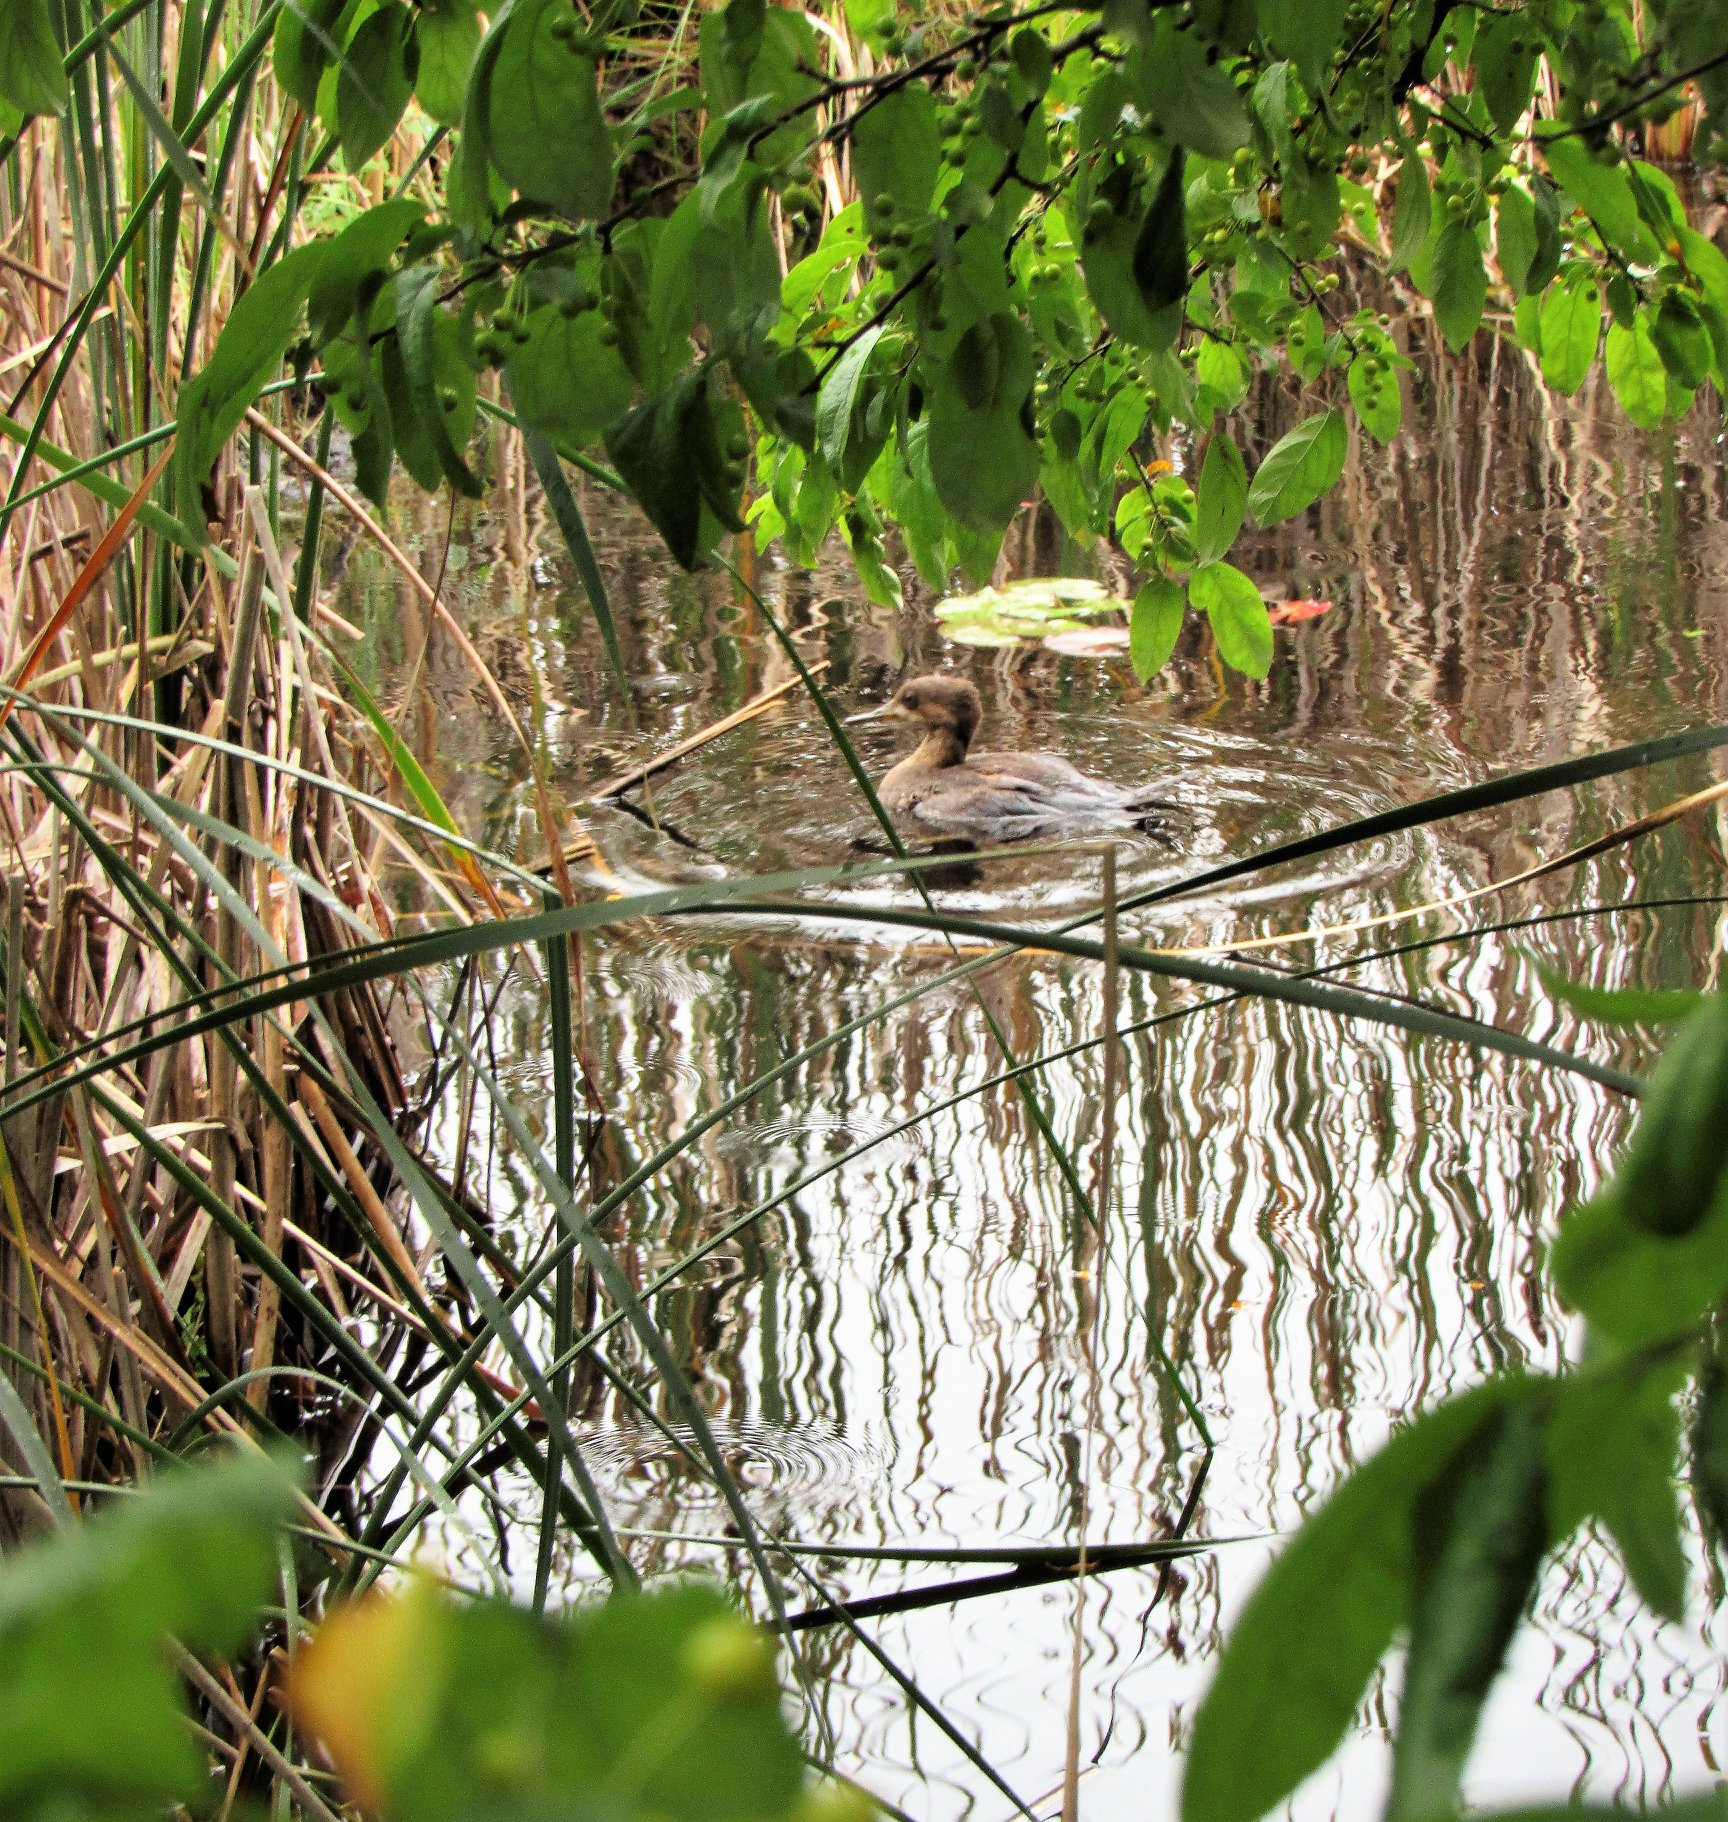 There is our little Hooded Merganser enjoying some peace and quiet away from the others!